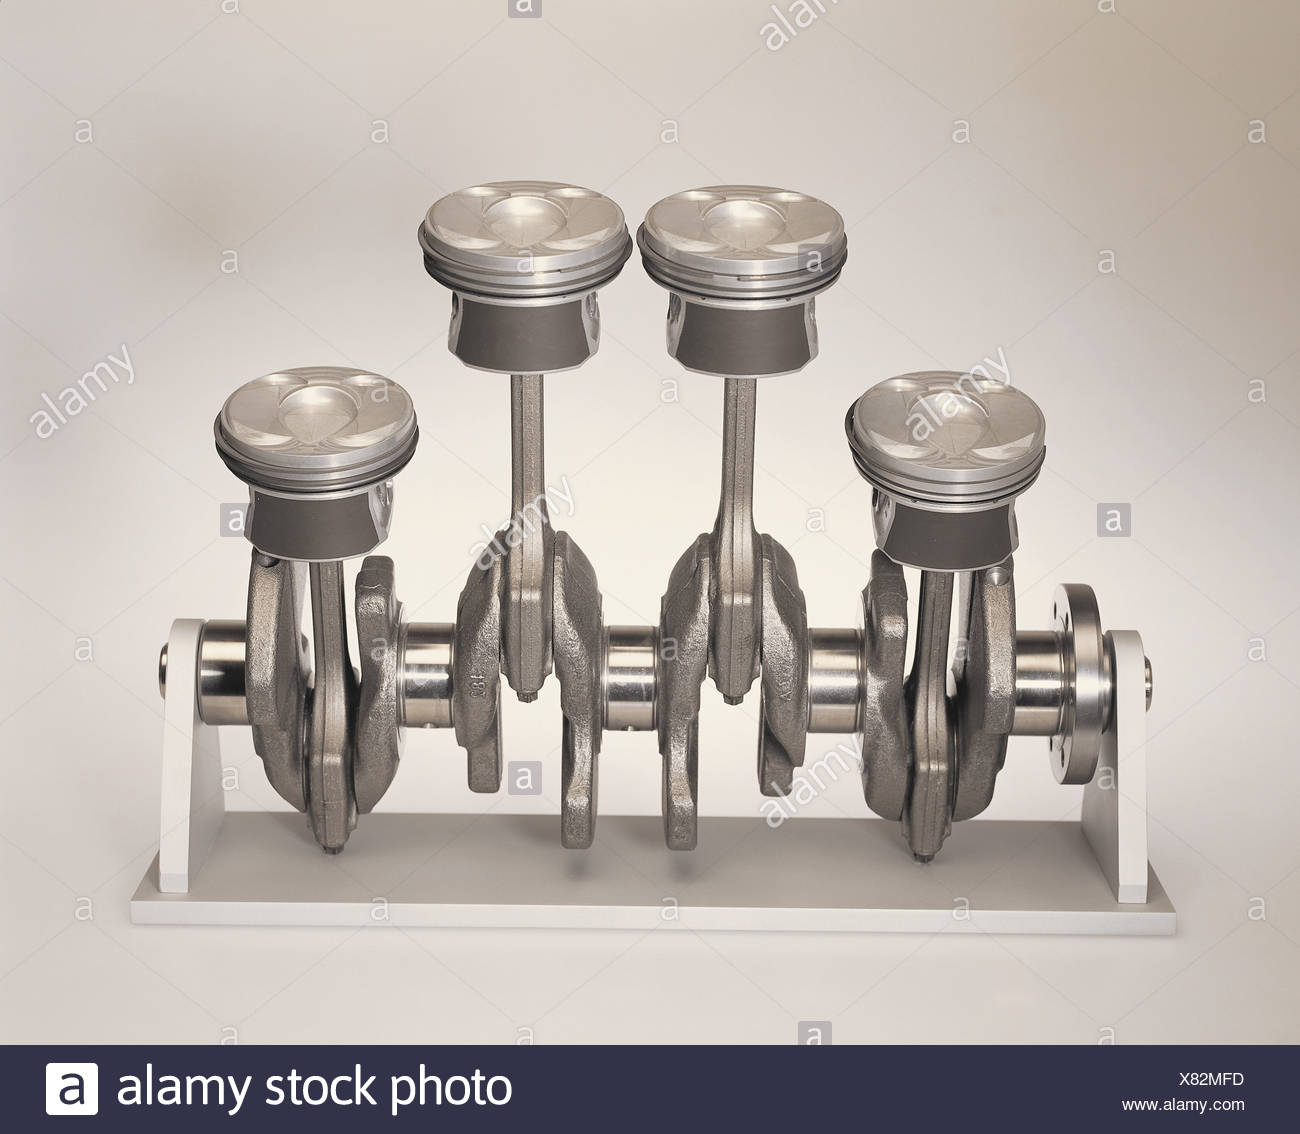 Crankshaft pistons conrod motor-parts crank-mechanisms clipping path clipping path pistons crank-mechanisms crankshaft - Stock Image